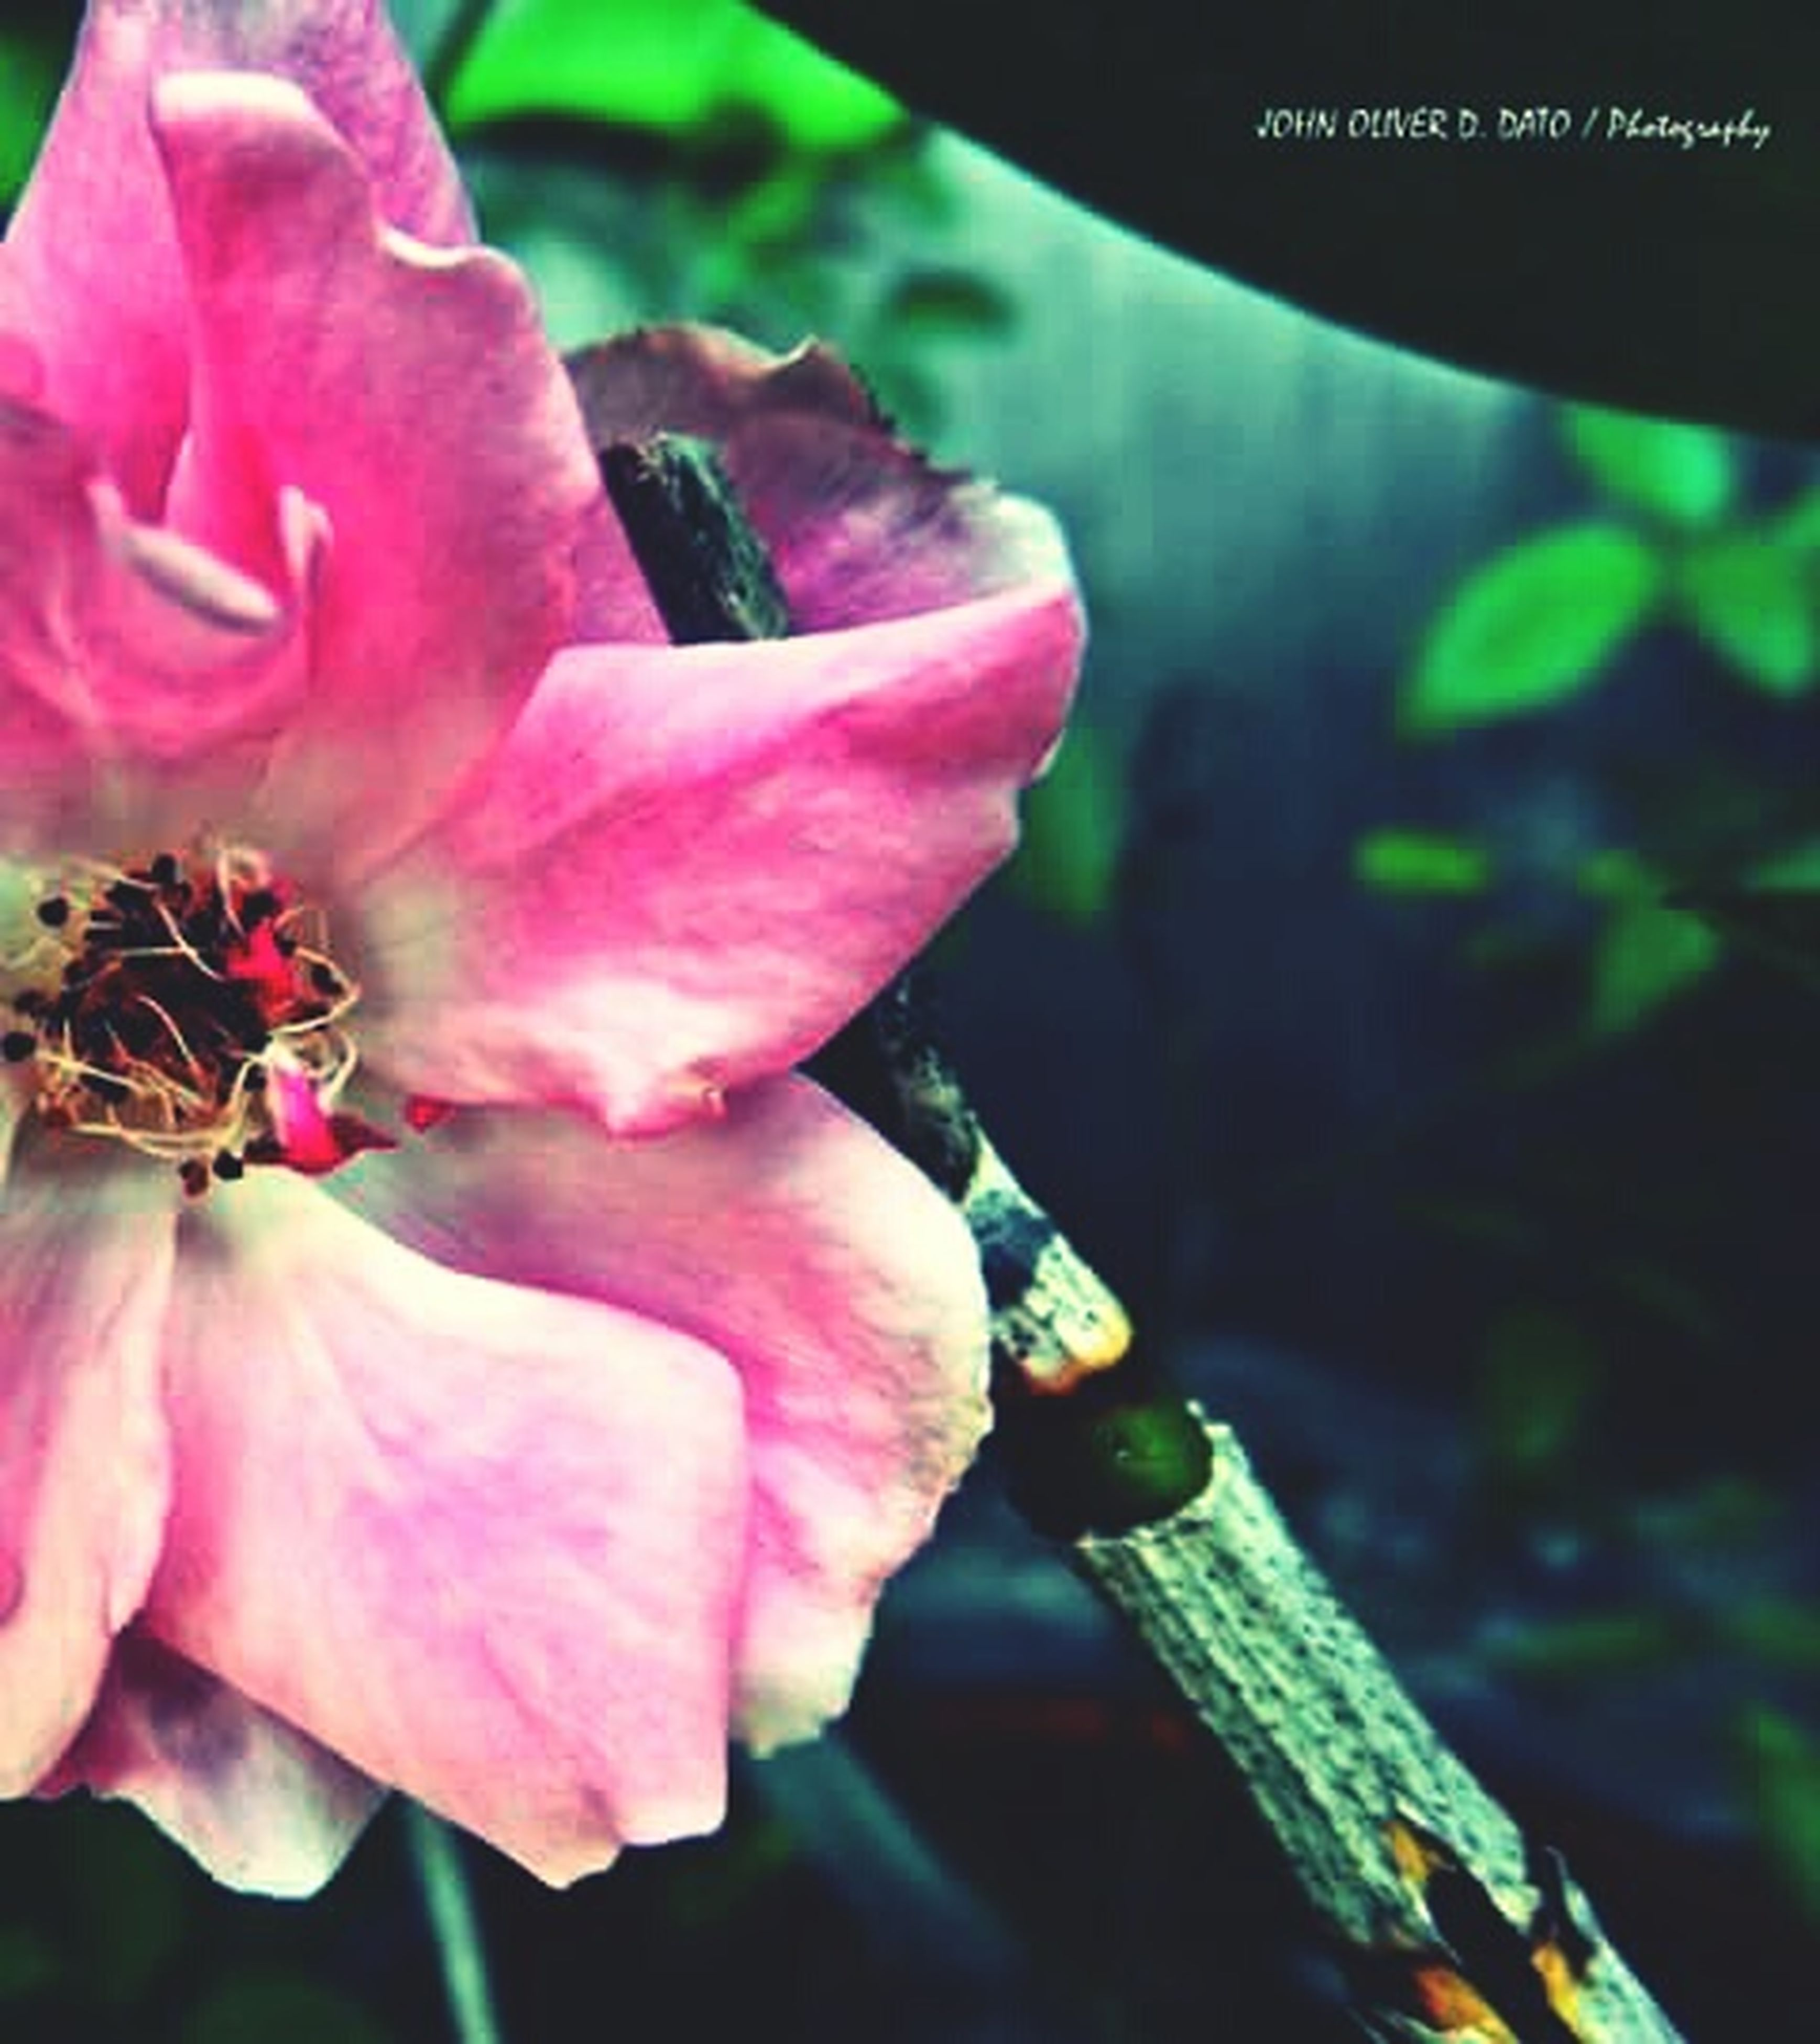 flower, petal, freshness, close-up, pink color, focus on foreground, flower head, fragility, beauty in nature, growth, nature, selective focus, blooming, plant, pink, day, outdoors, no people, single flower, stem